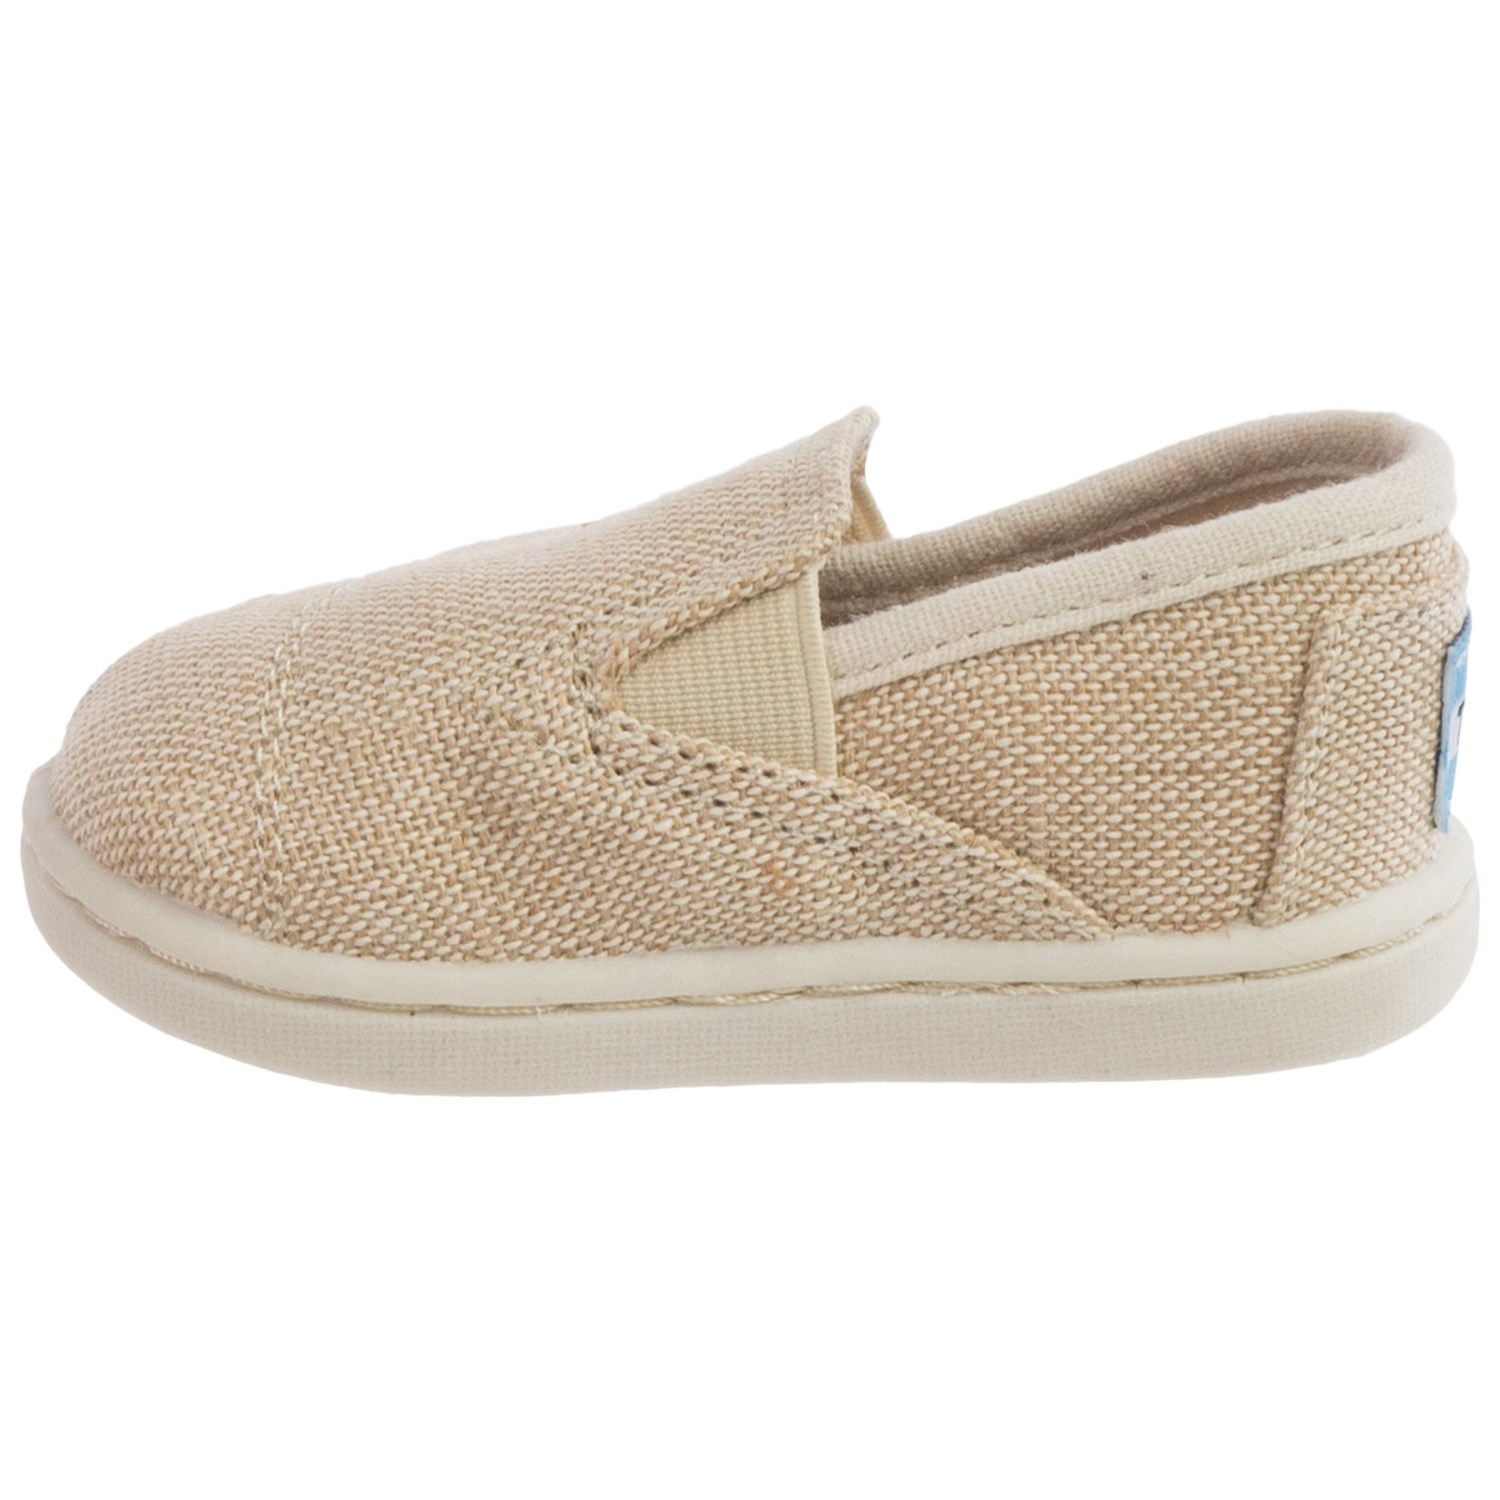 Toms Shoes Sizing Reviews